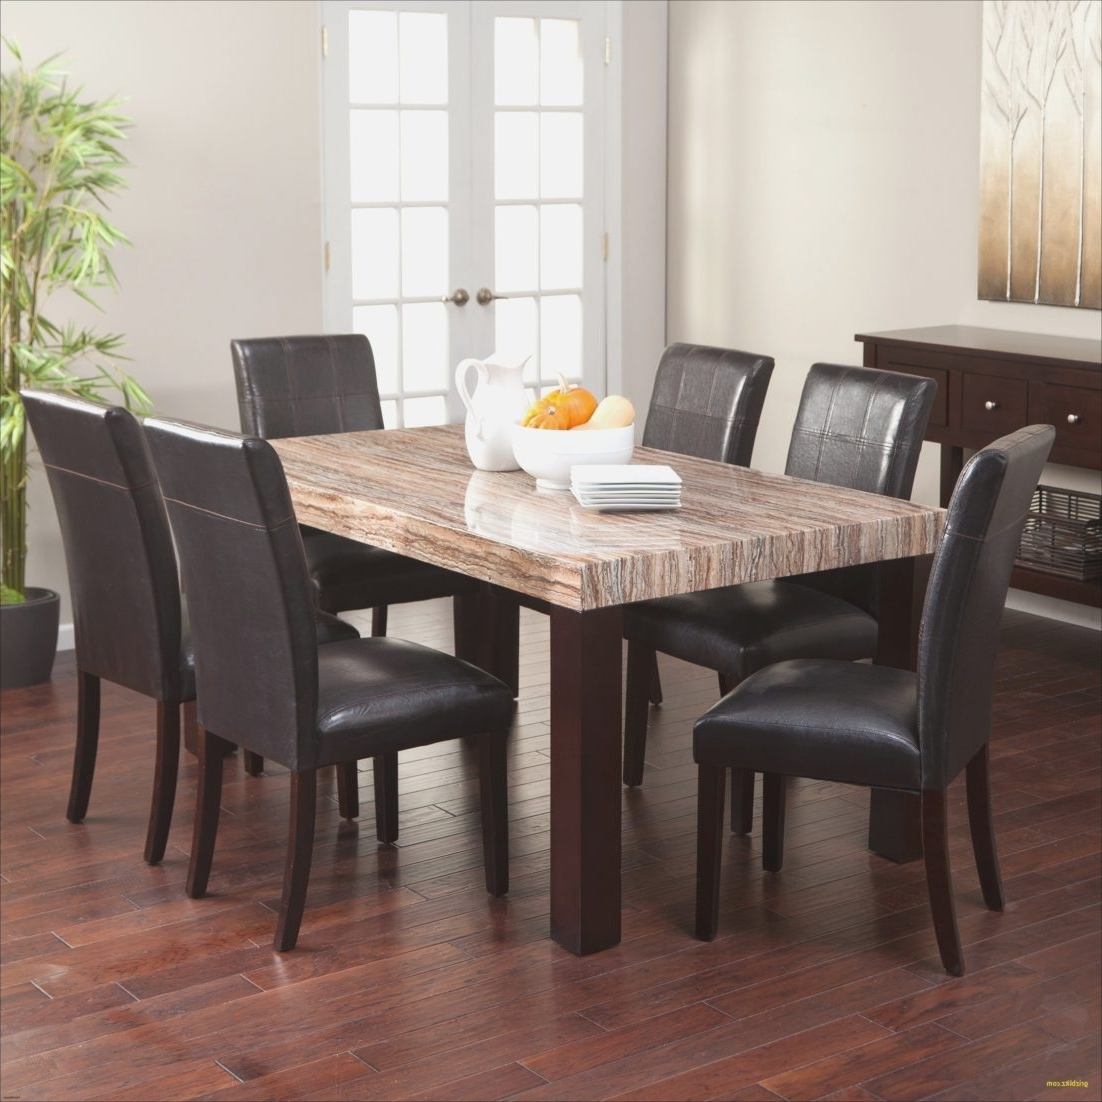 Fashionable Dining Table Chairs House Stunning Second Hand Ebay 0 Beautiful Wood Throughout Ebay Dining Suites (View 15 of 25)